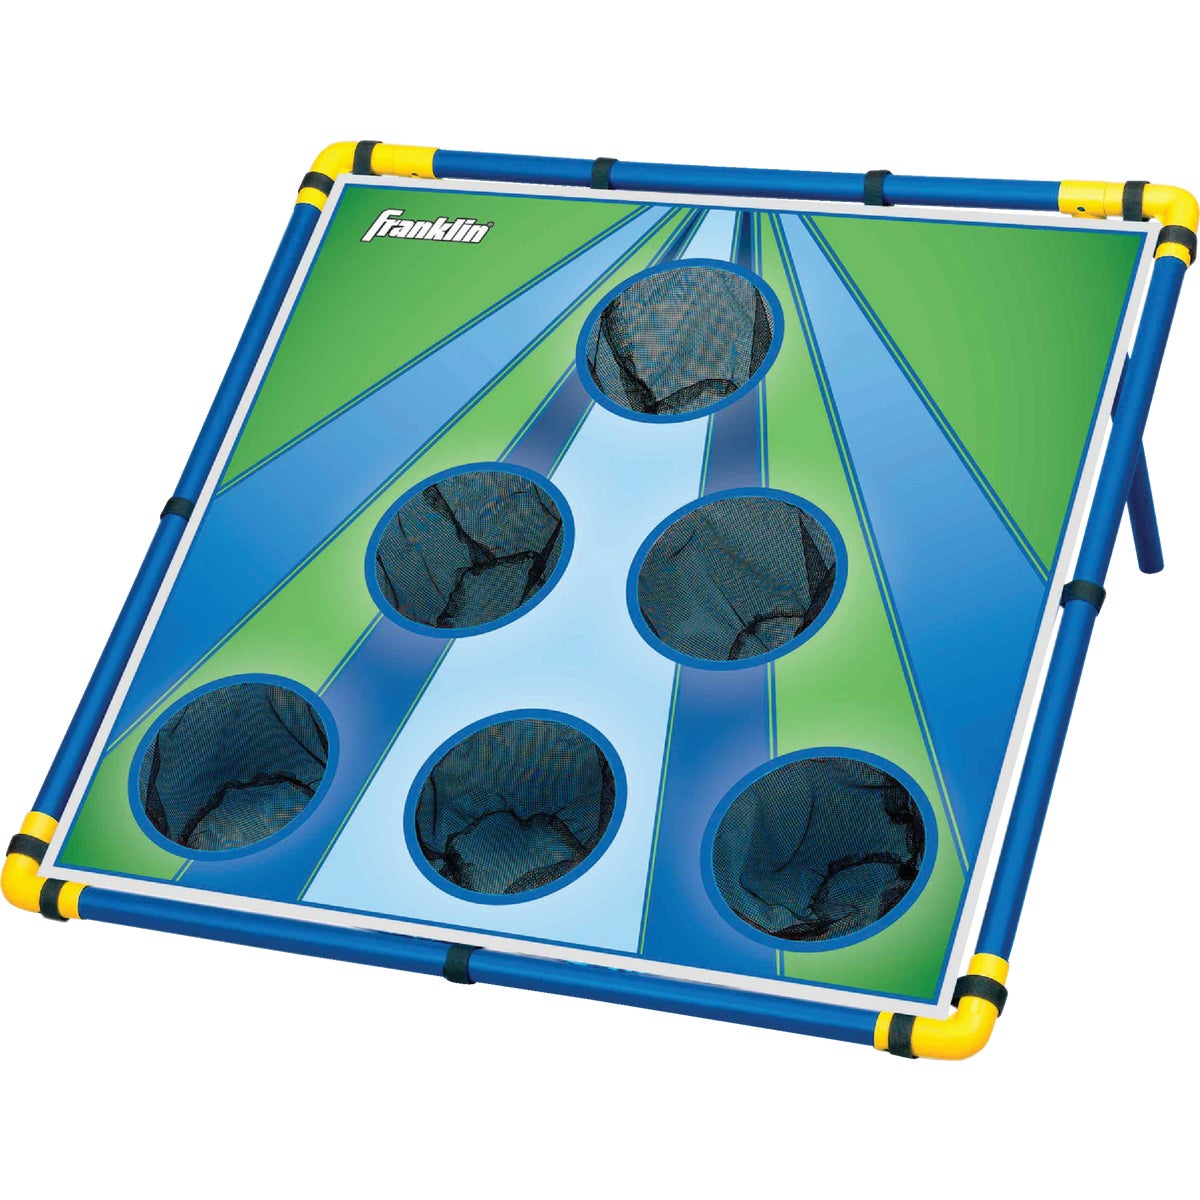 BEAN BAG GAME - 52100 by Franklin Sports